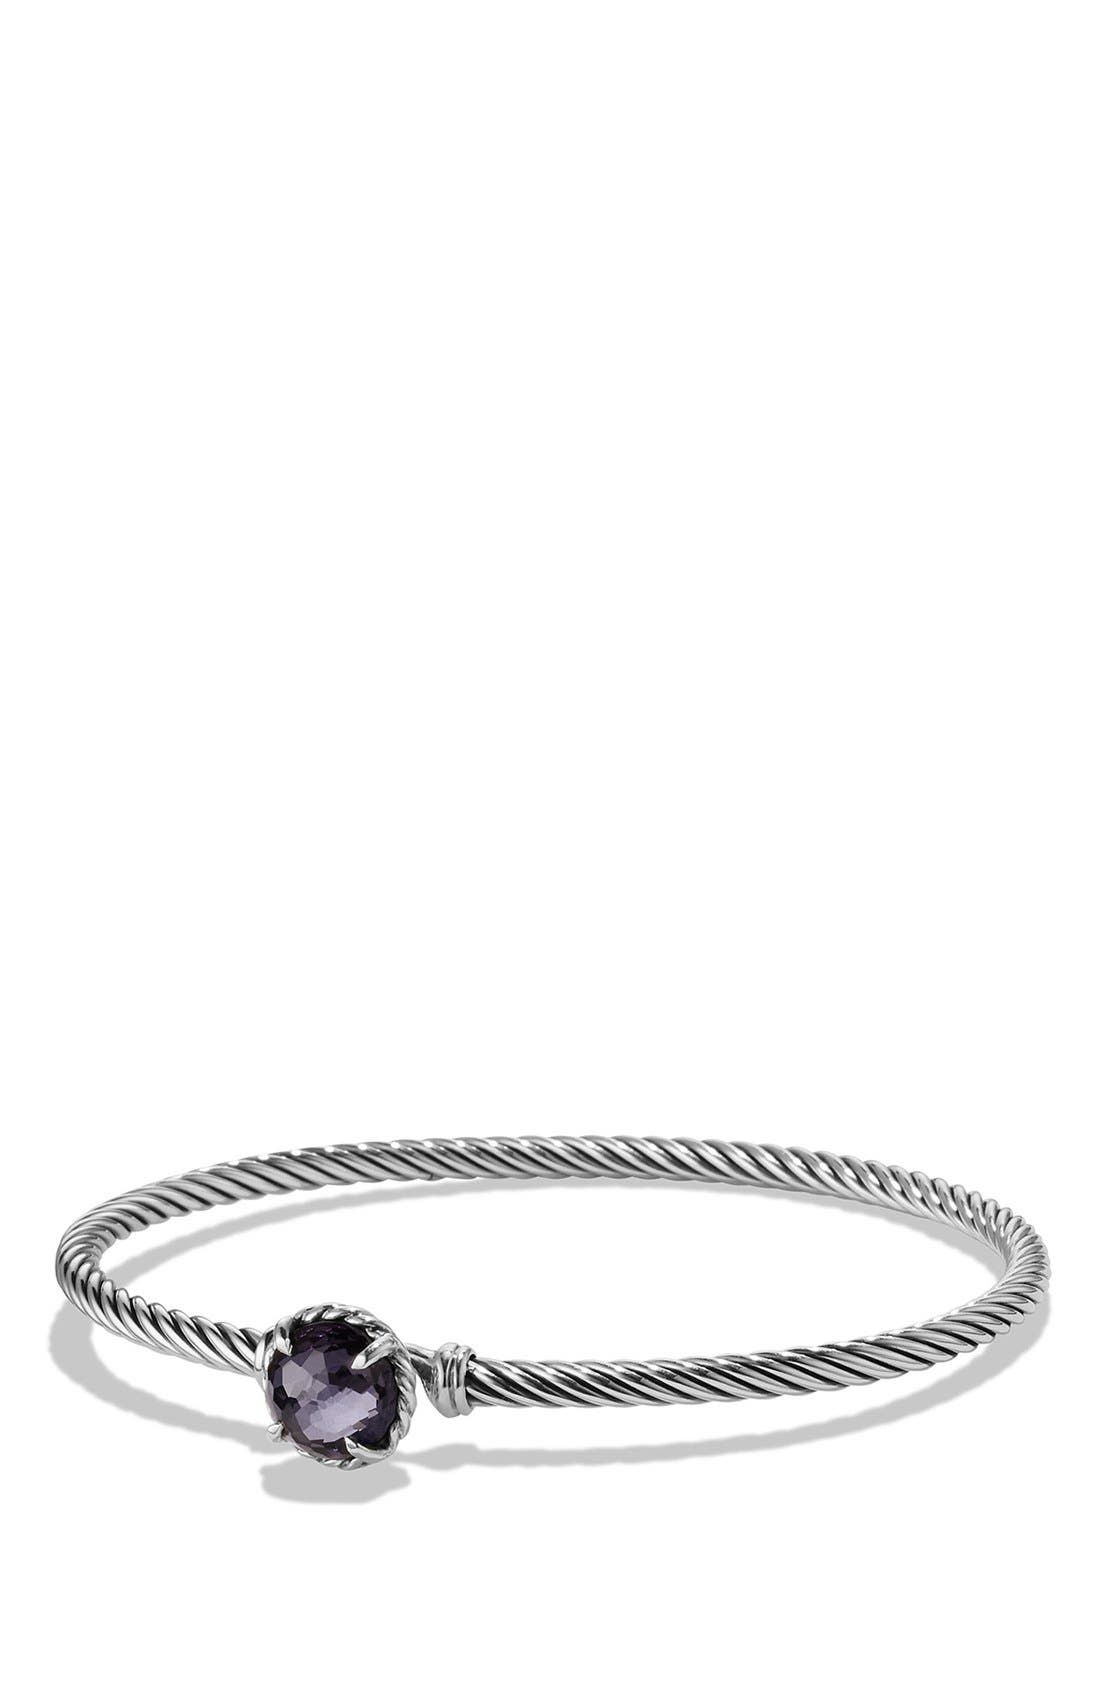 David Yurman 'Color Classics' Bangle Bracelet